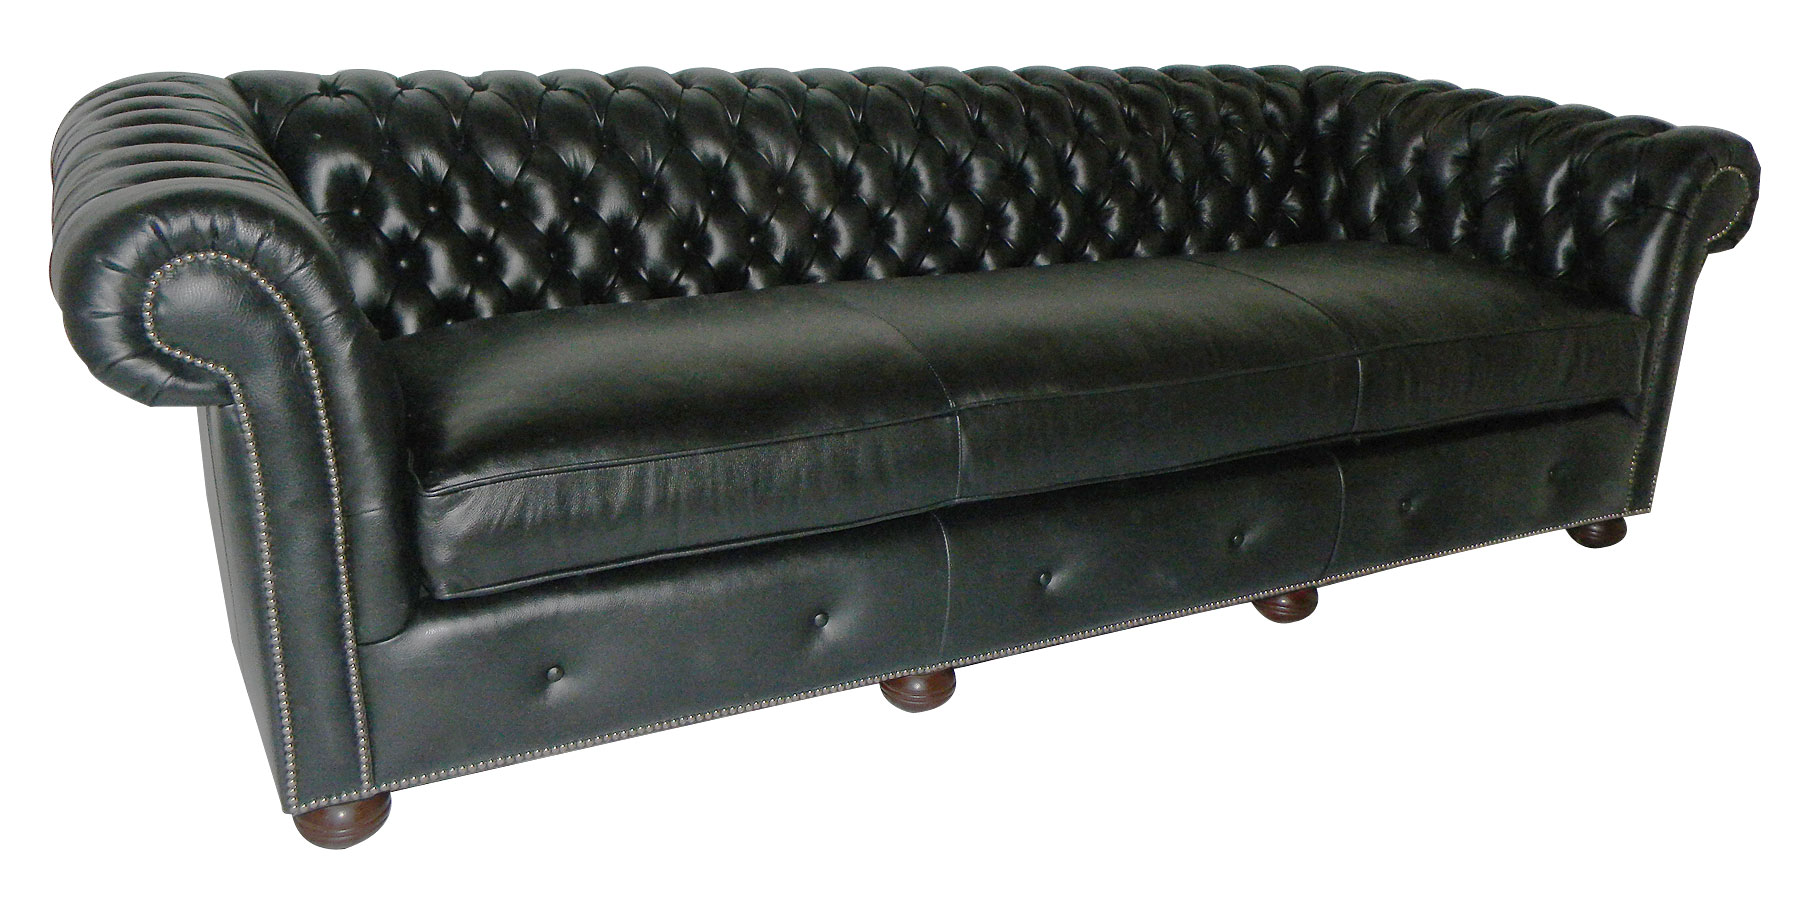 Tufted Leather Chesterfield Style Sofa Club Furniture